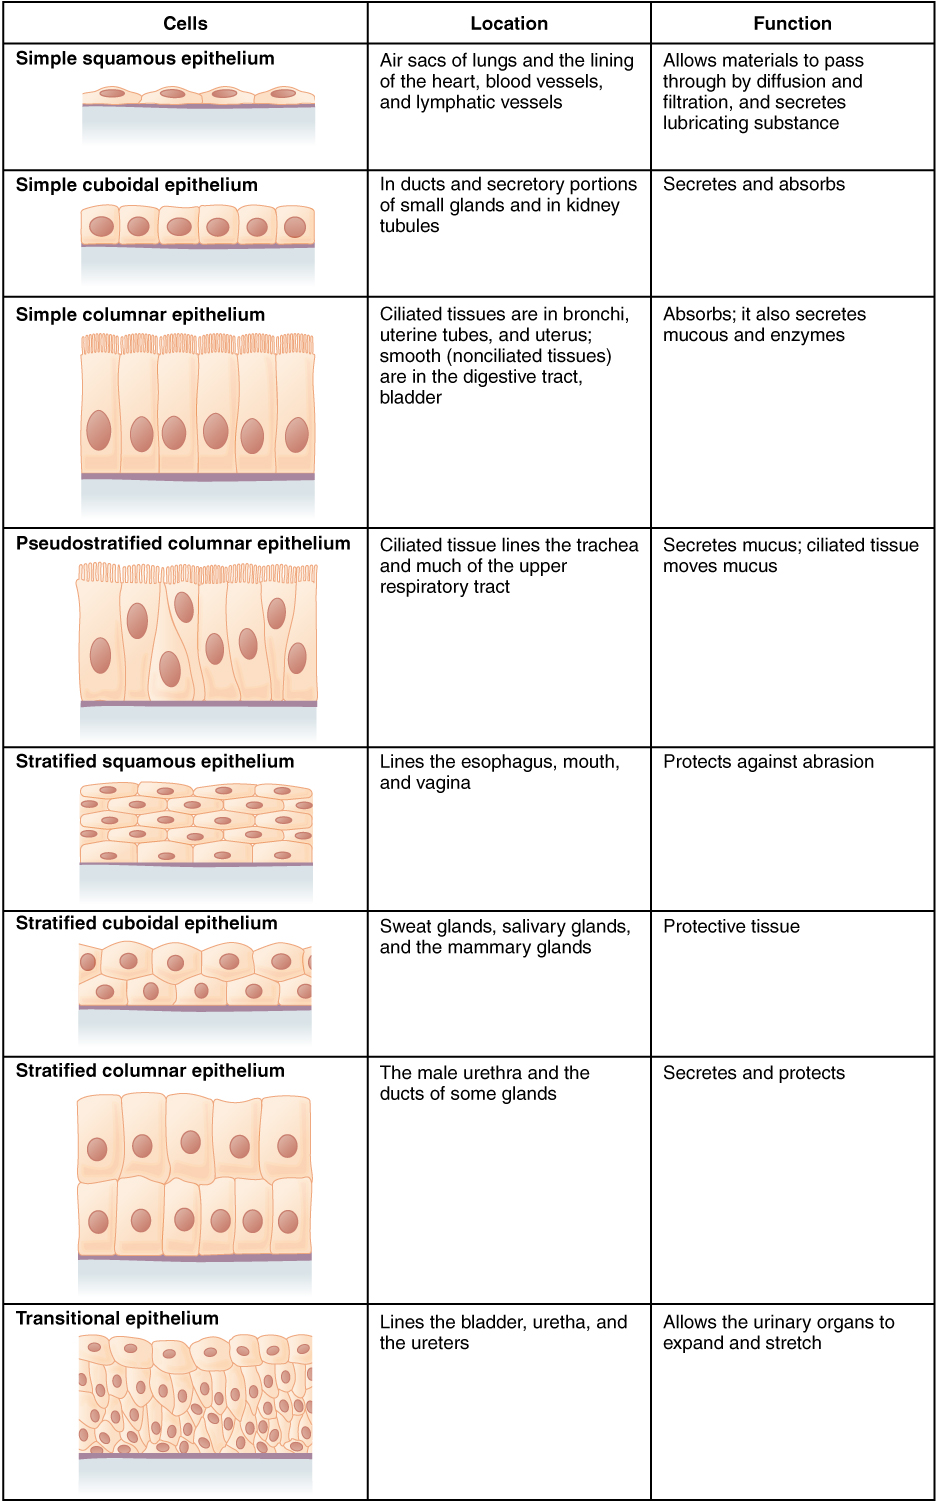 Main Difference - Epithelial vs Endothelial Cells